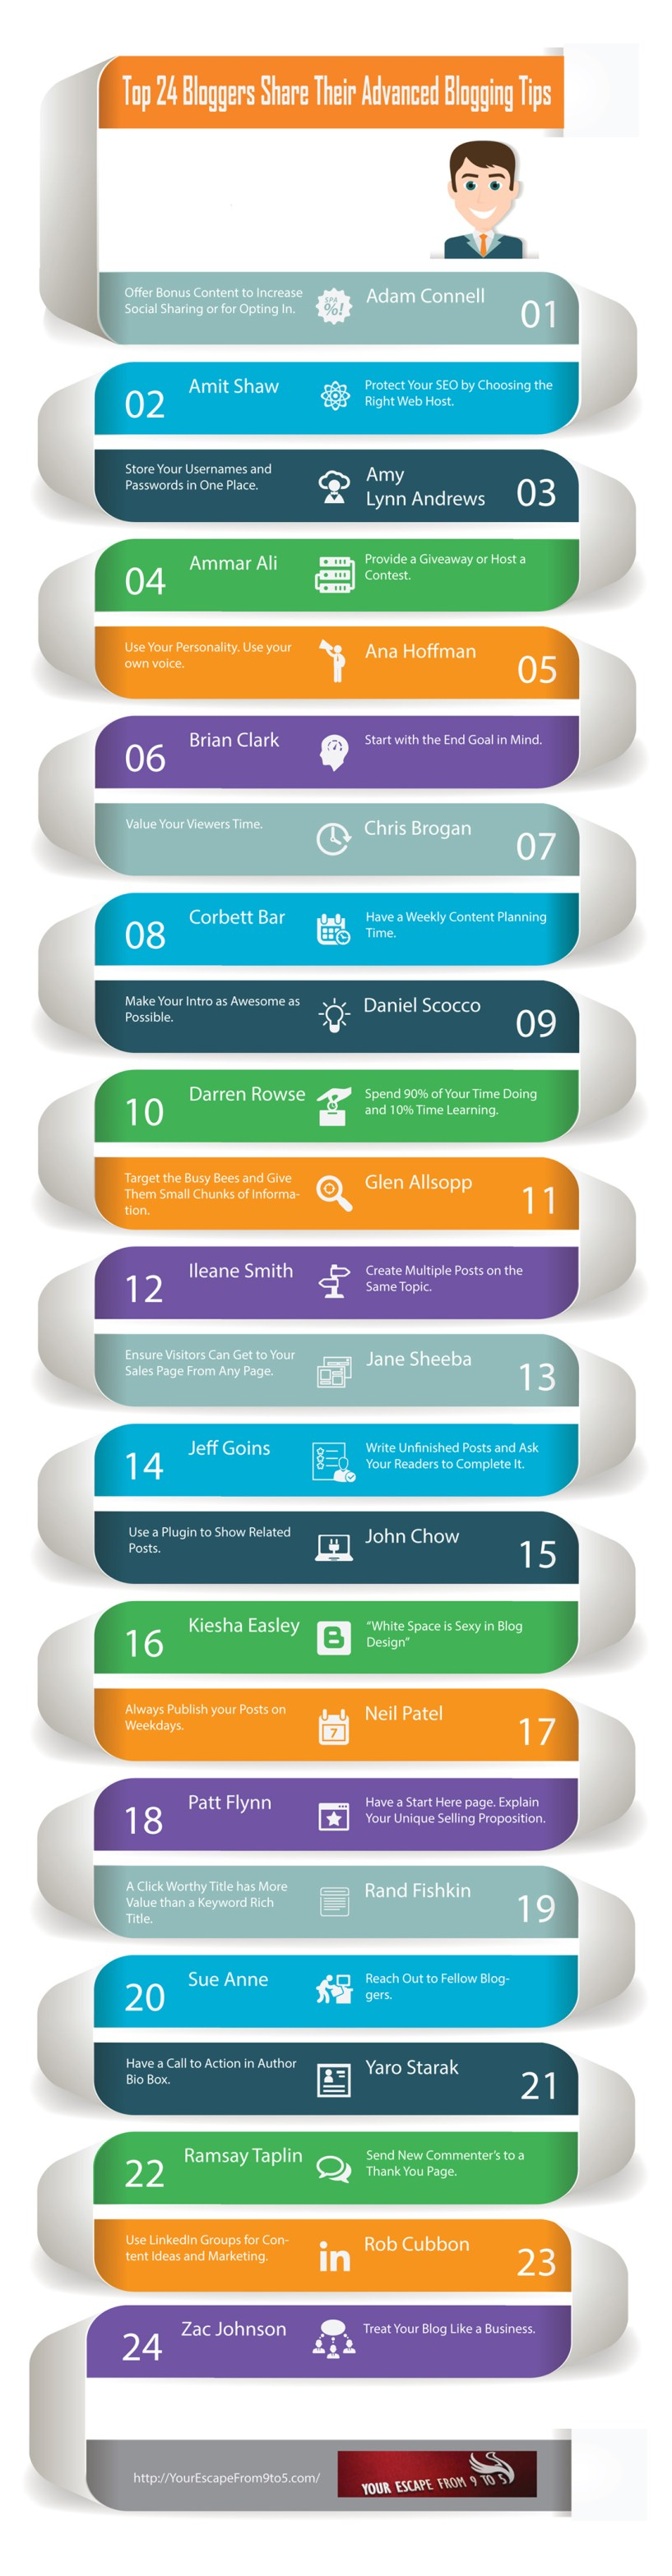 Top 24 Bloggers Share Their Advanced Blogging Tips - Infographic